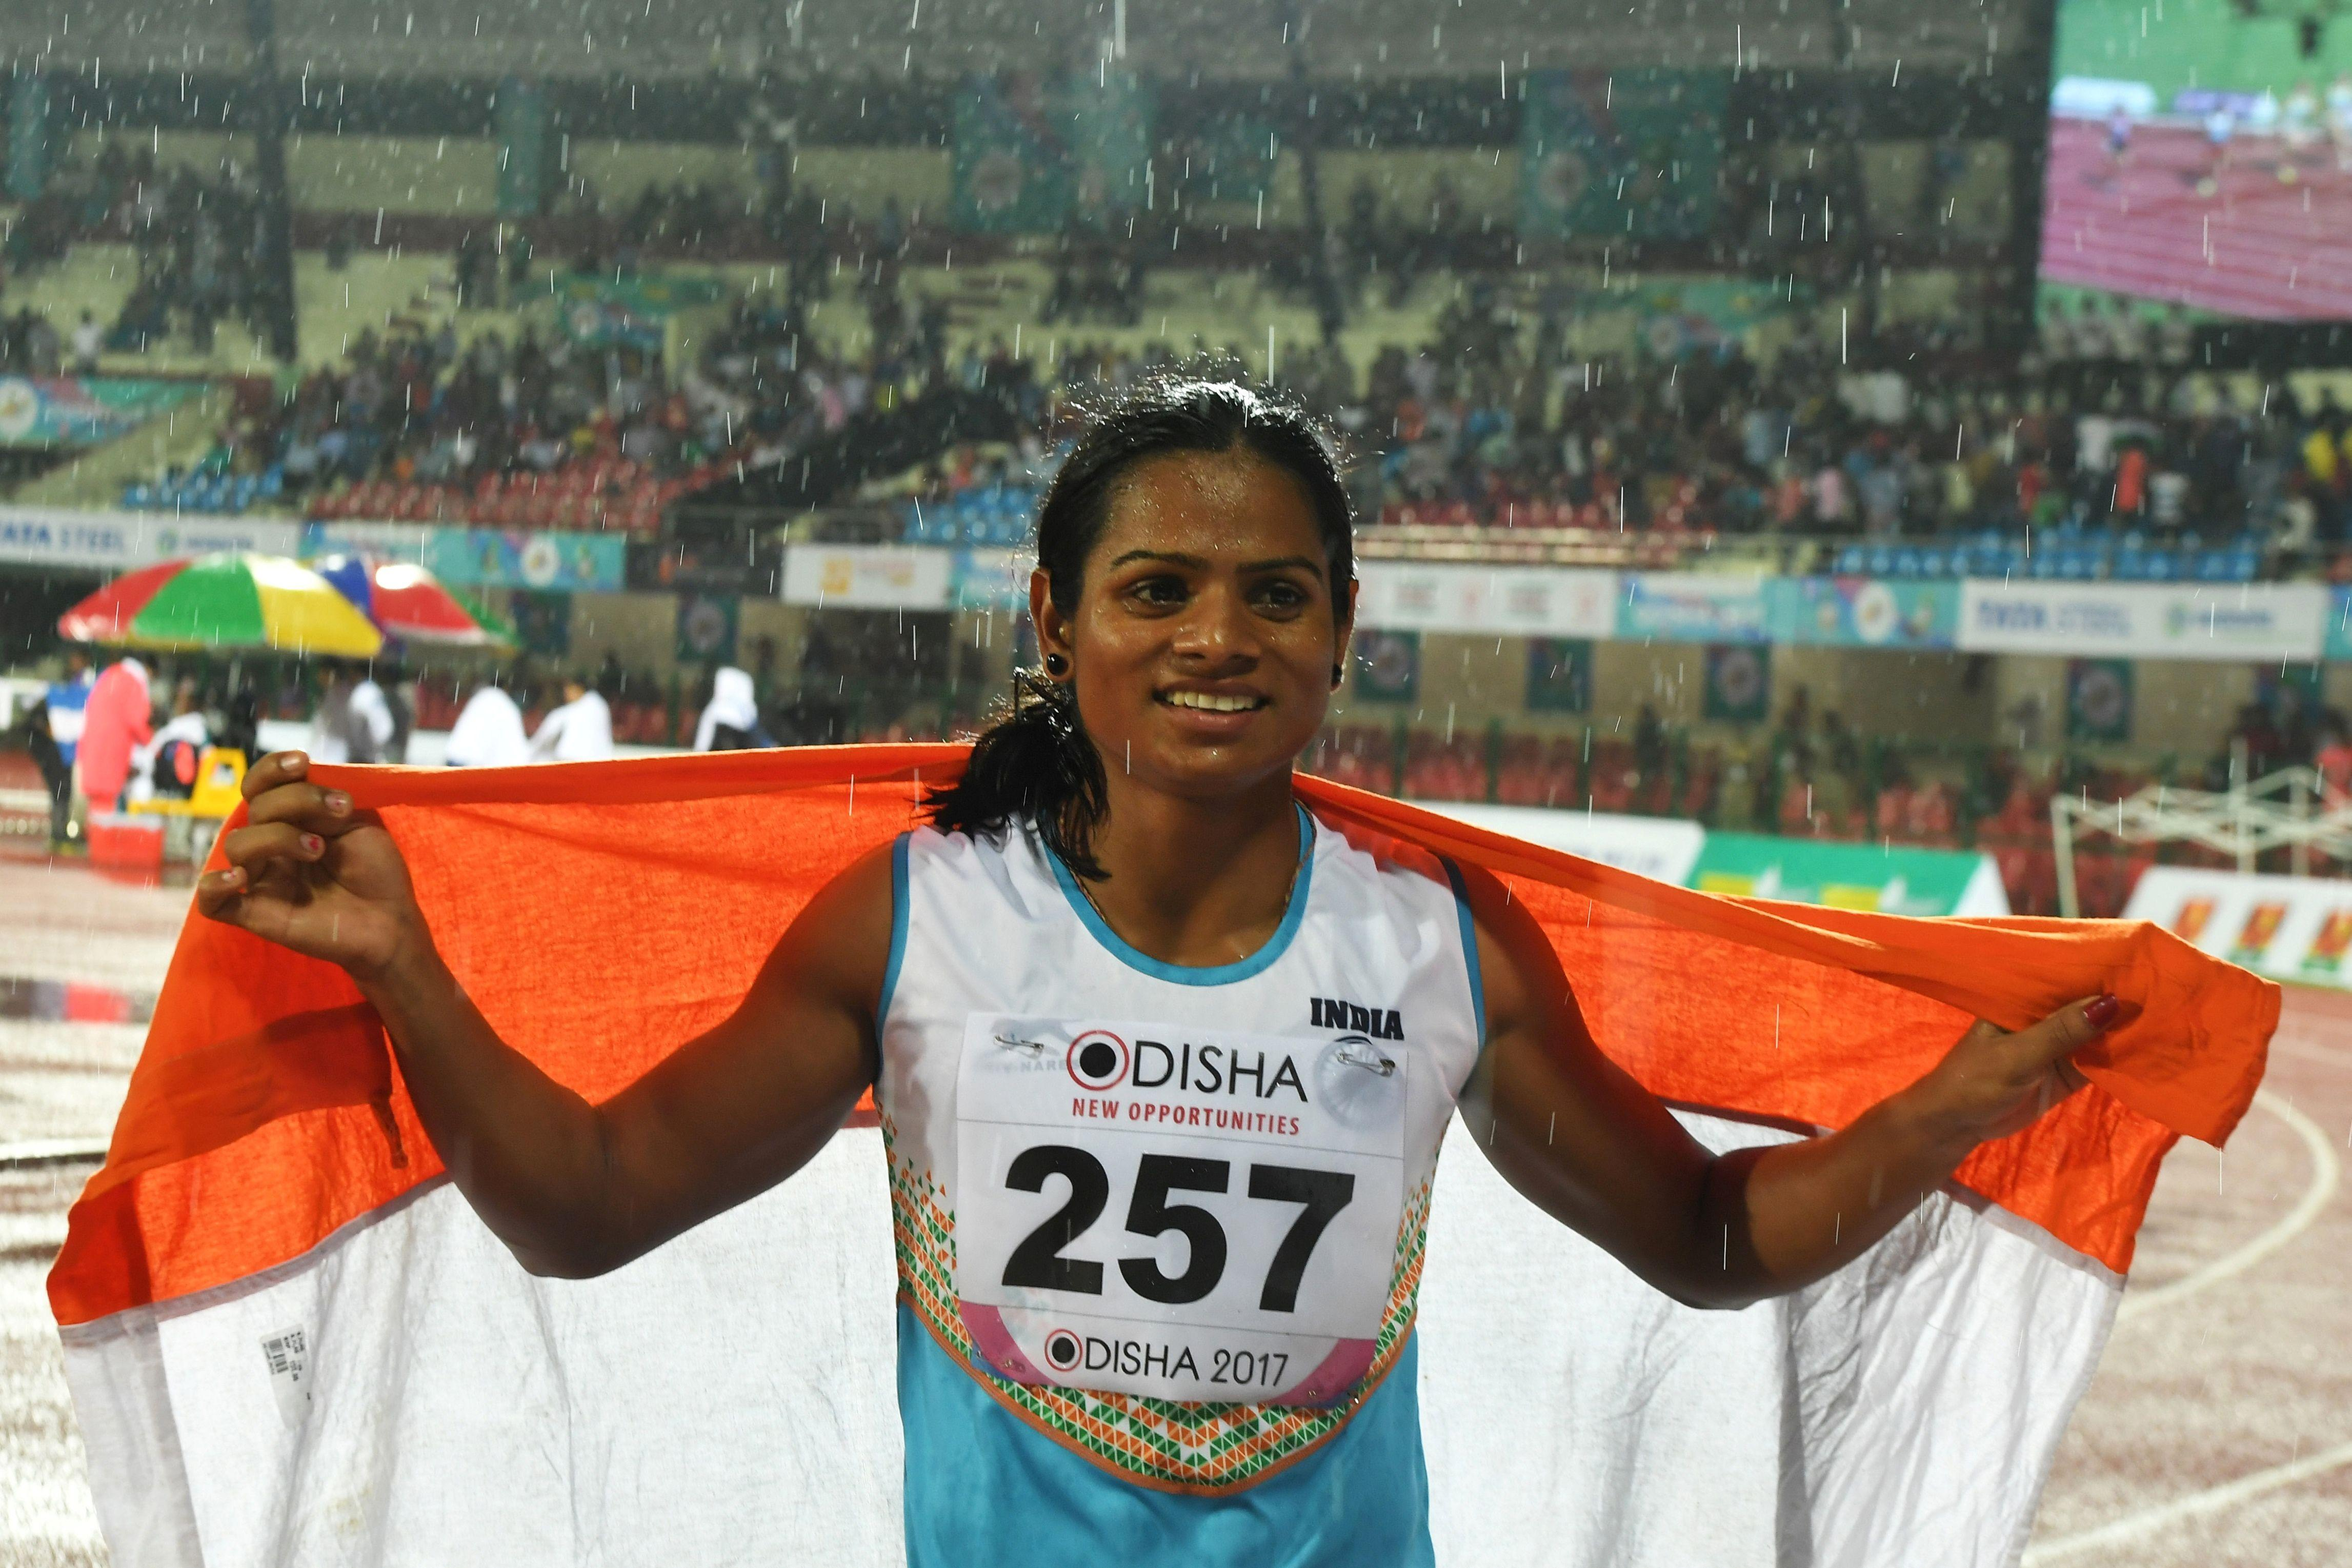 Indian sprinter Dutee Chand has come out in support of Caster Semenya